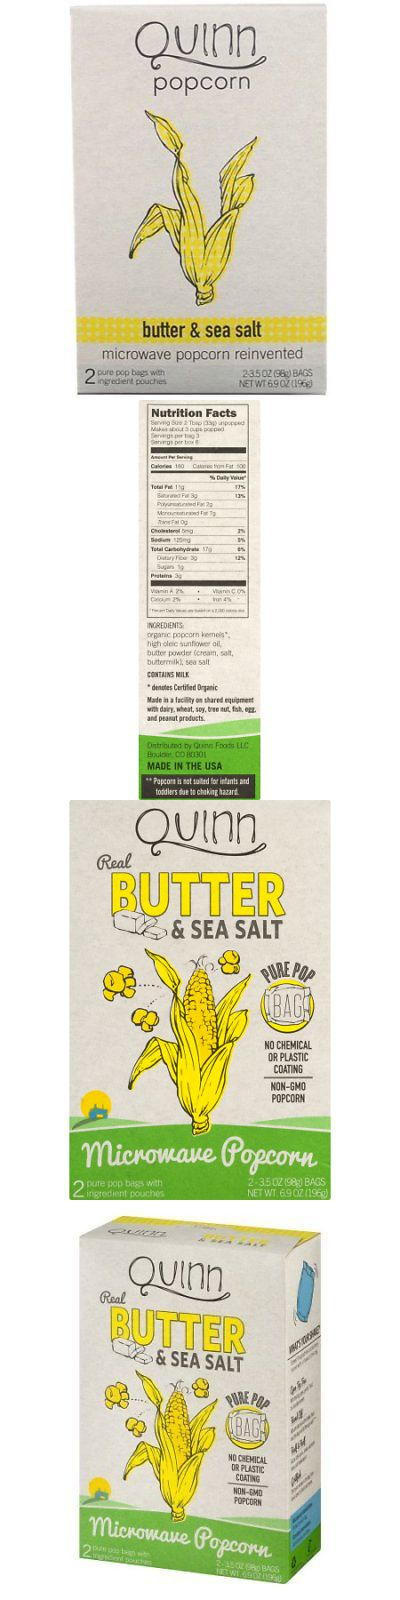 Popcorn 179181: Quinn Popcorn, Butter And Sea Salt Mircowave Popcorn, 6.9 Ounce (Pack Of 6) -> BUY IT NOW ONLY: $36.39 on eBay!